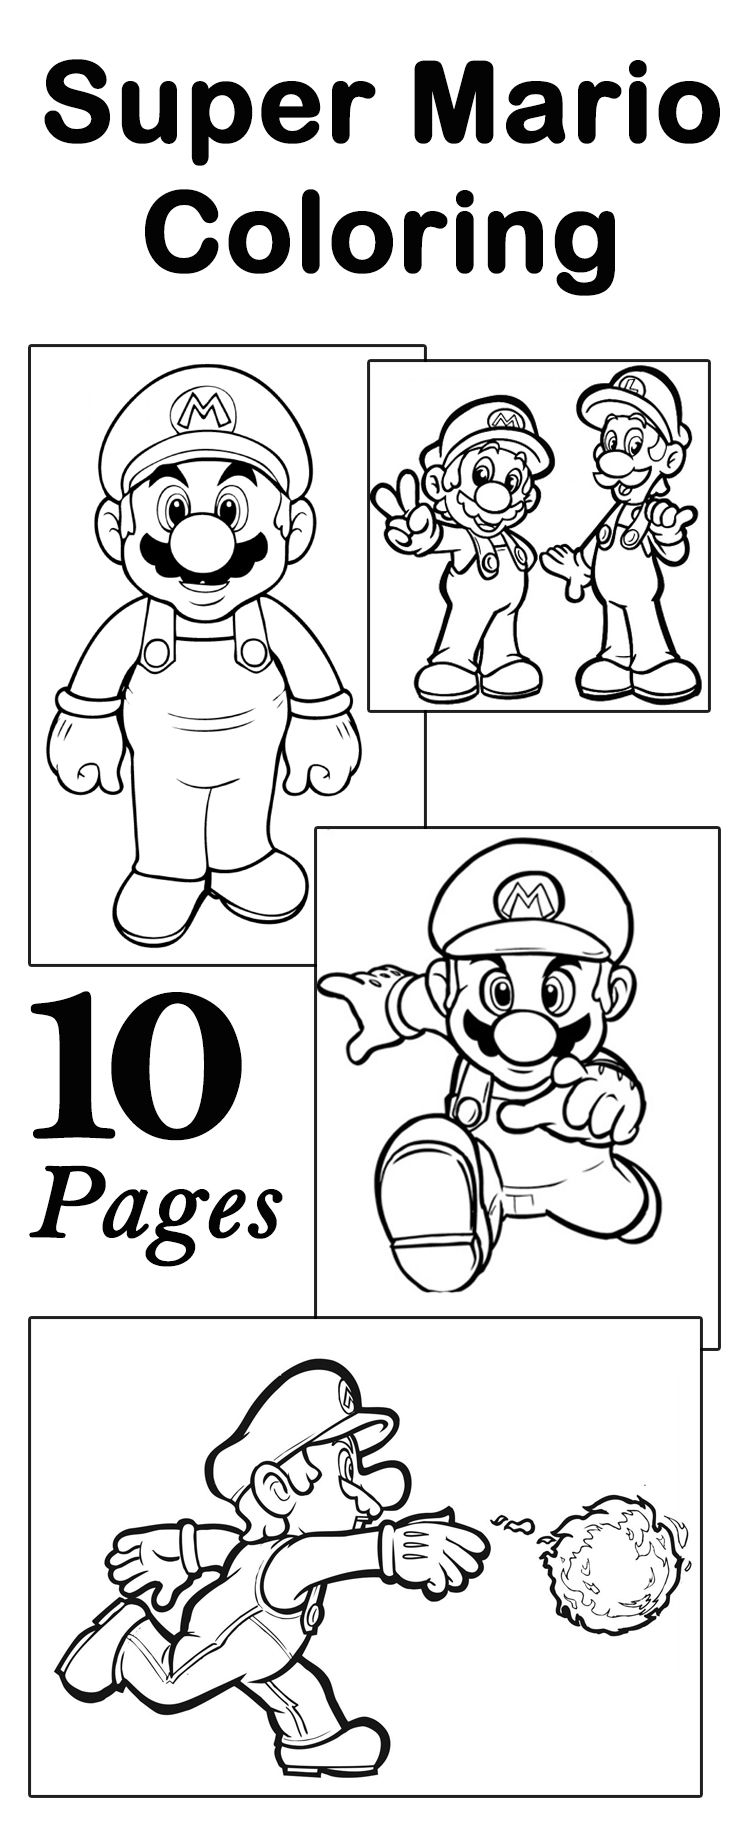 worksheet Mario Worksheets mario educational fun kids coloring pages and preschool skills worksheets super pinterest worksheets